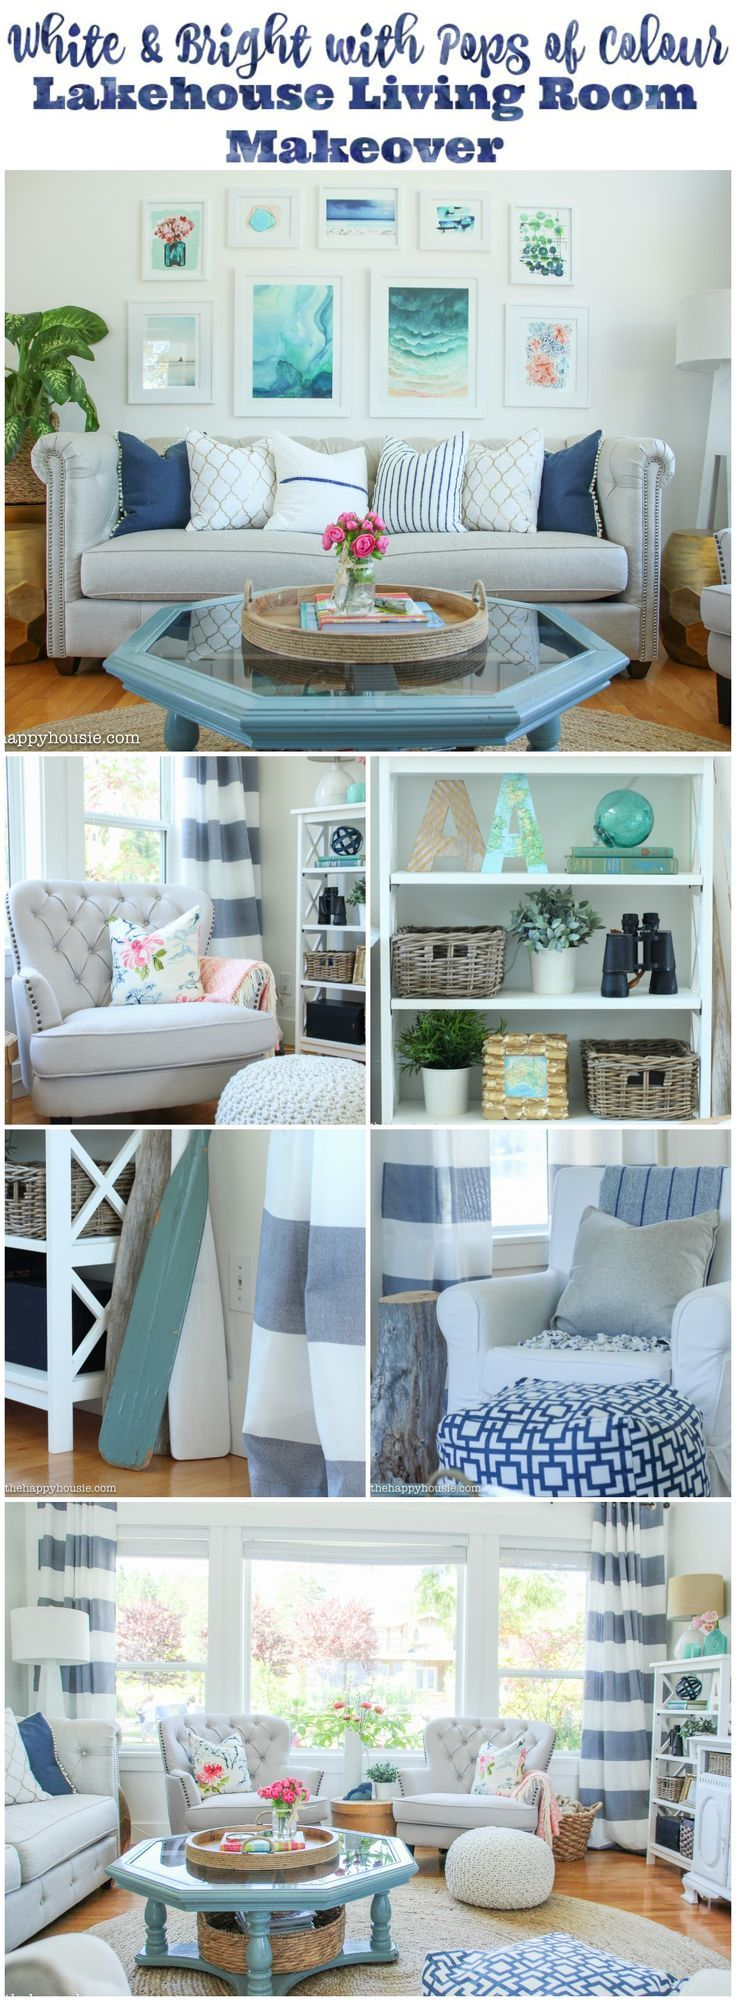 living room makeover reveal do it yourself today haus wohnen rund ums haus. Black Bedroom Furniture Sets. Home Design Ideas